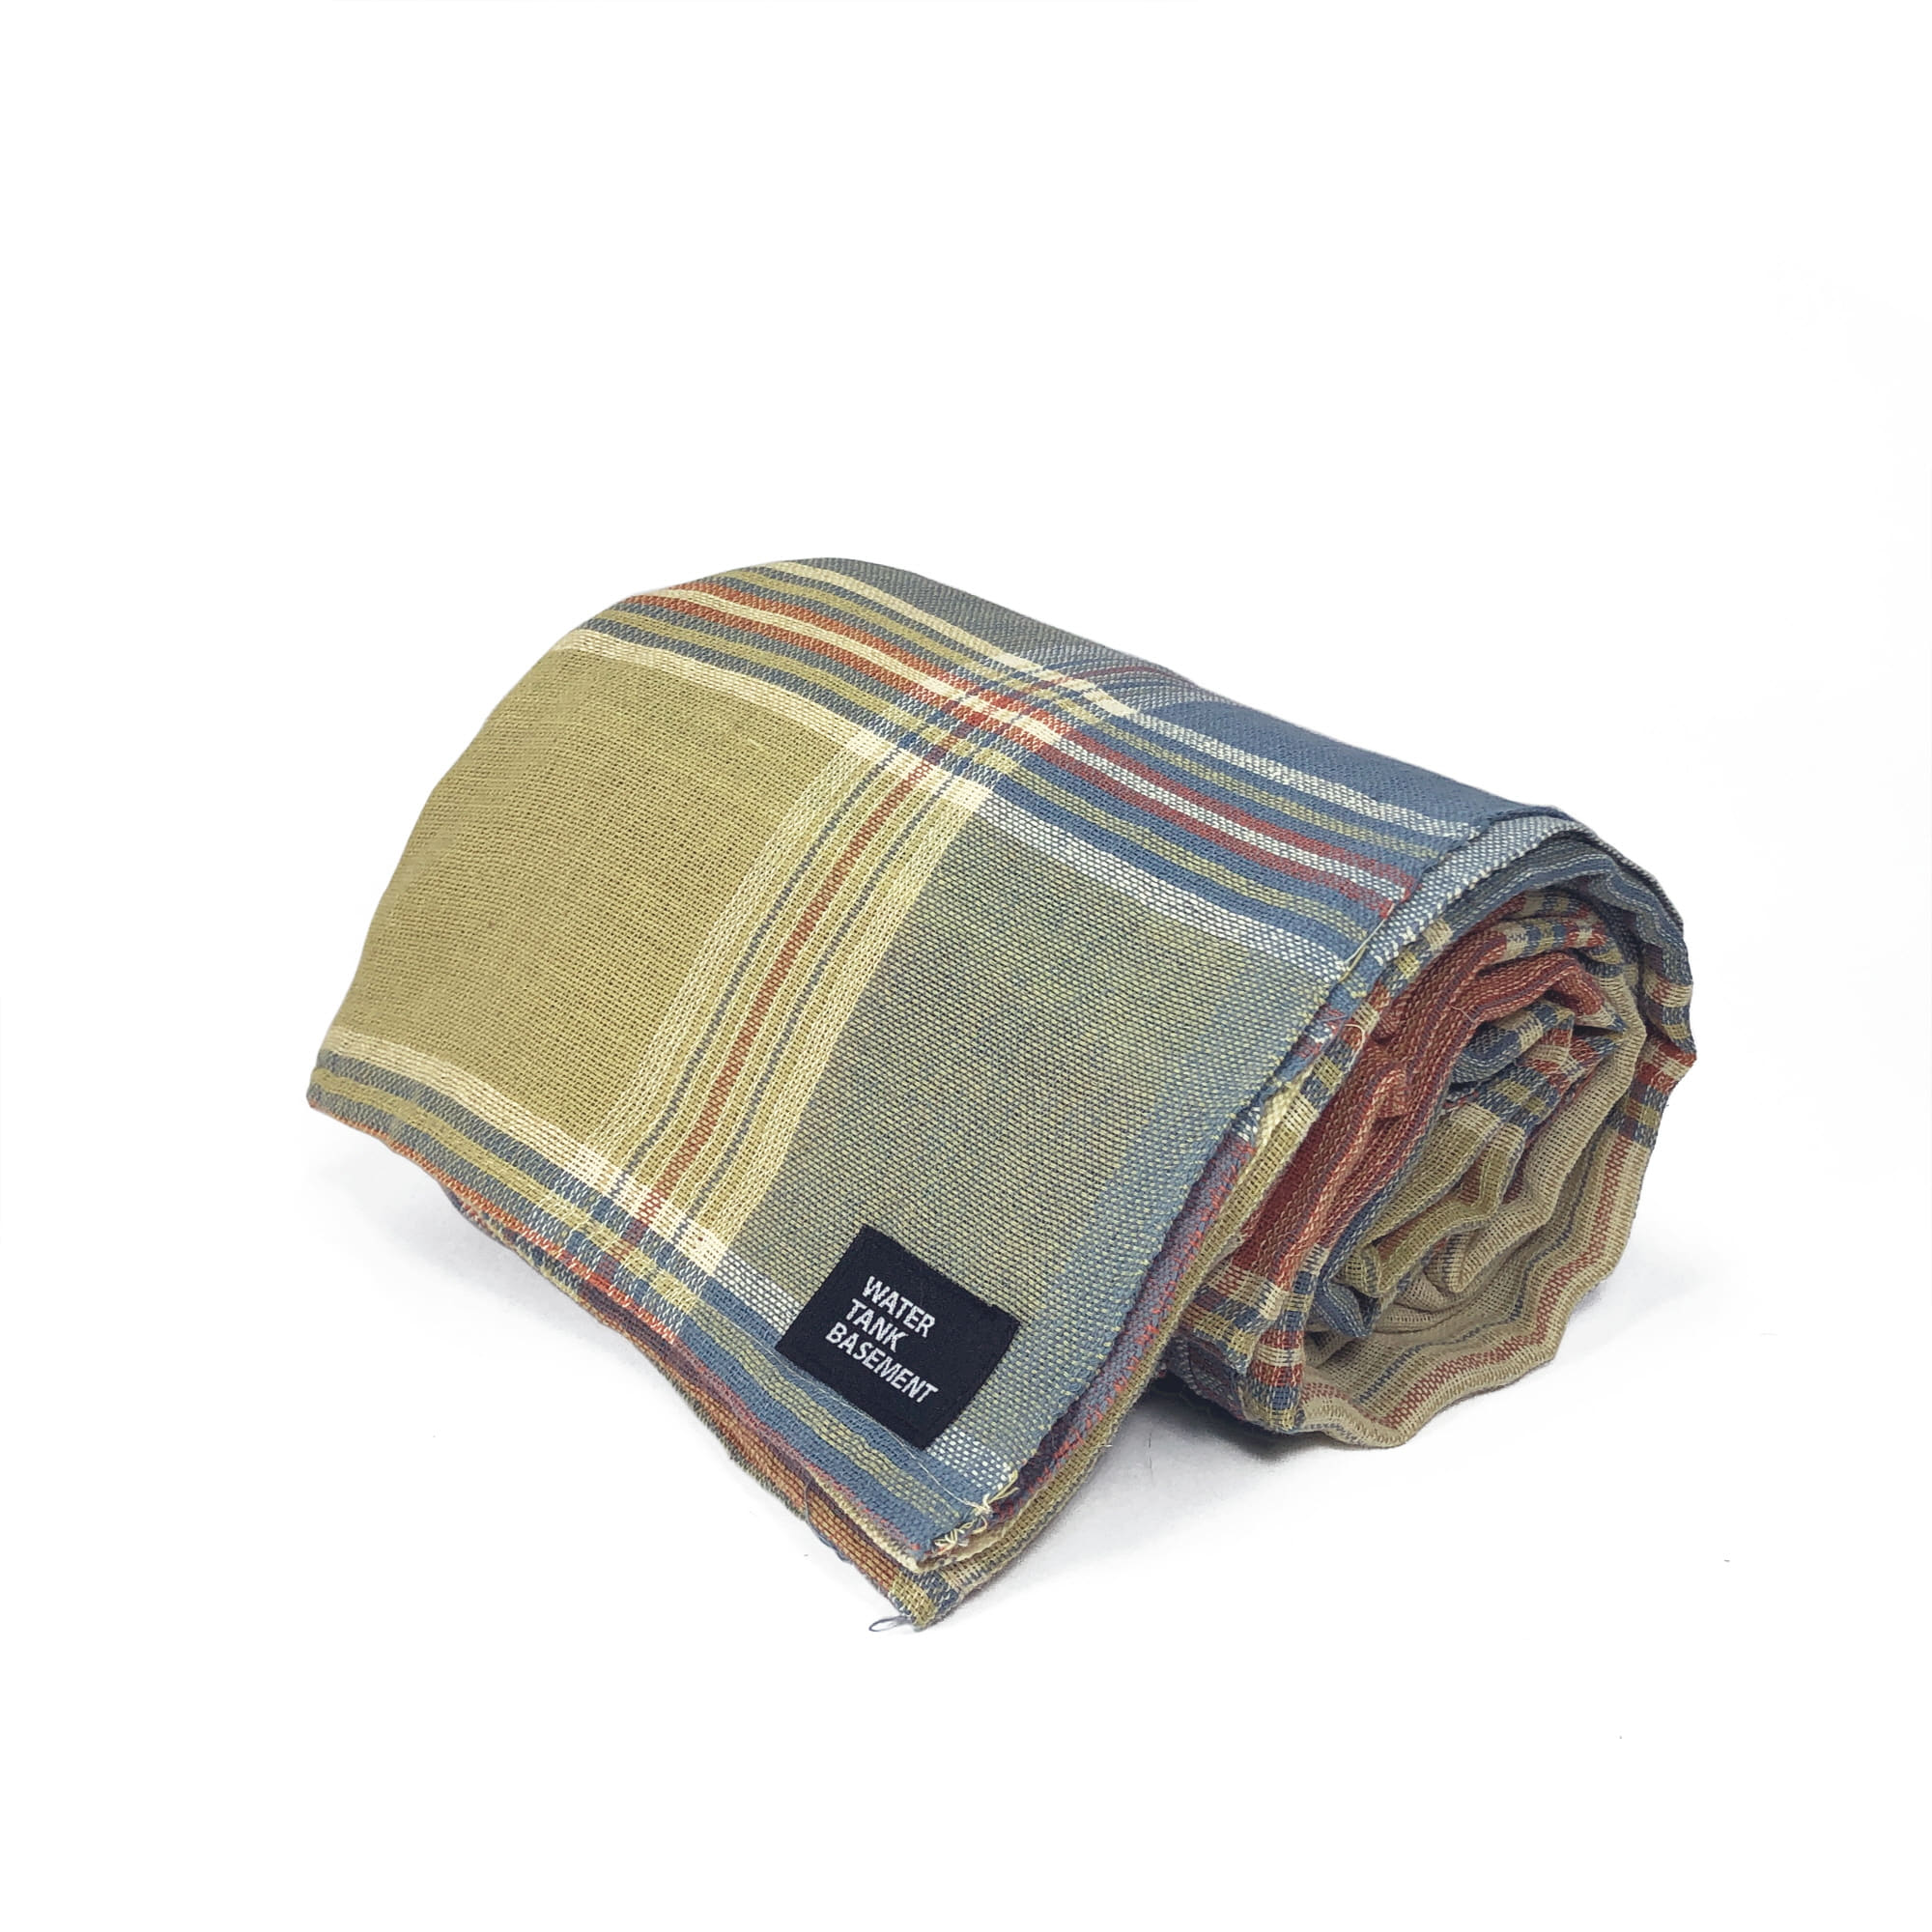 COTTON COVER - madras retro